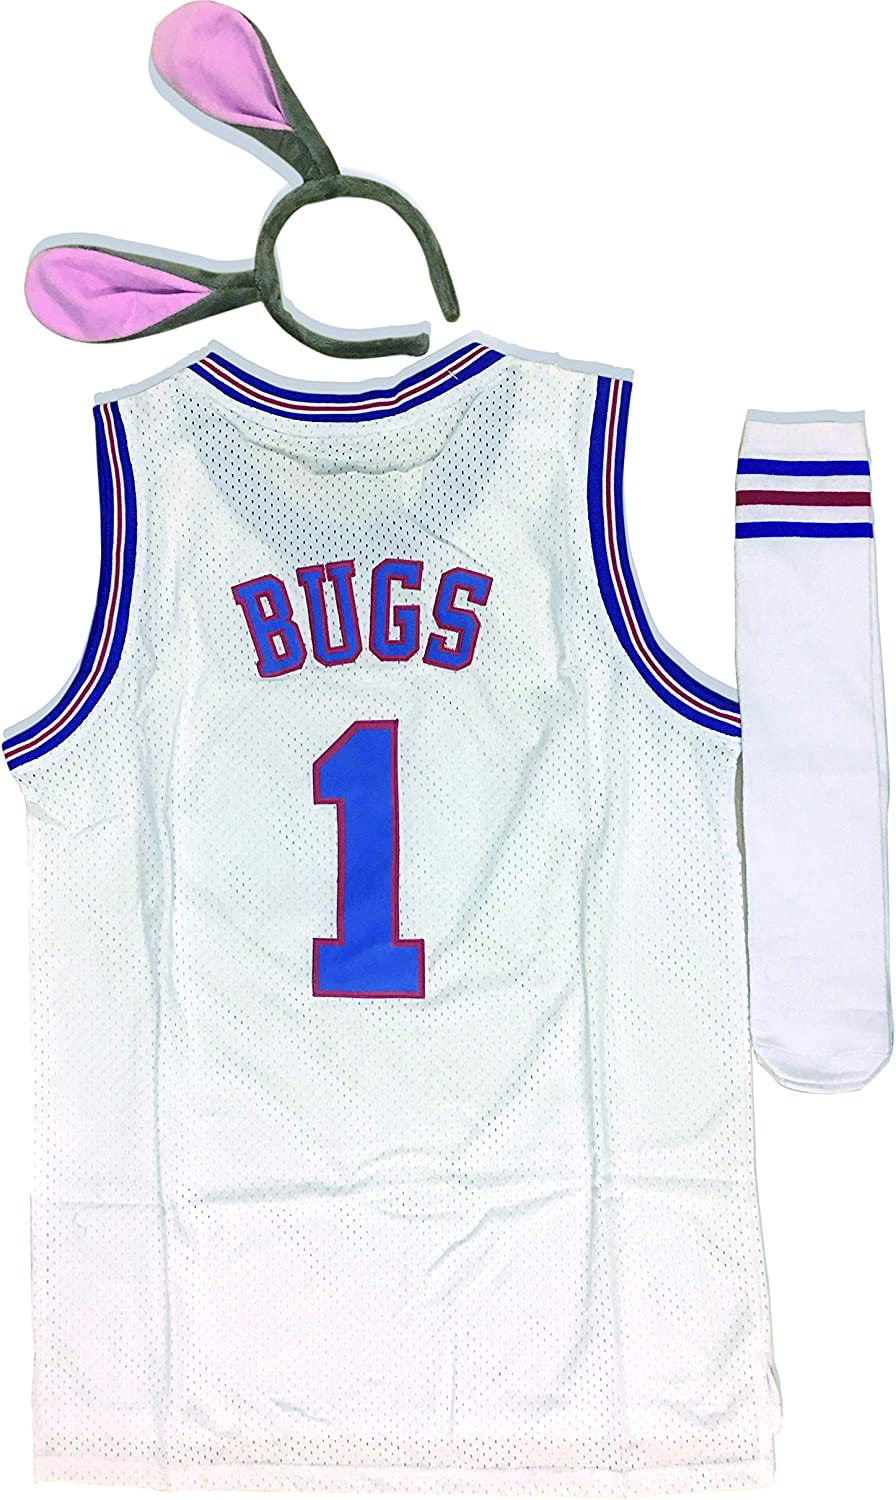 XLarge tune squad space jam movie basketball Shorts jersey looney for Adult Standard US Size